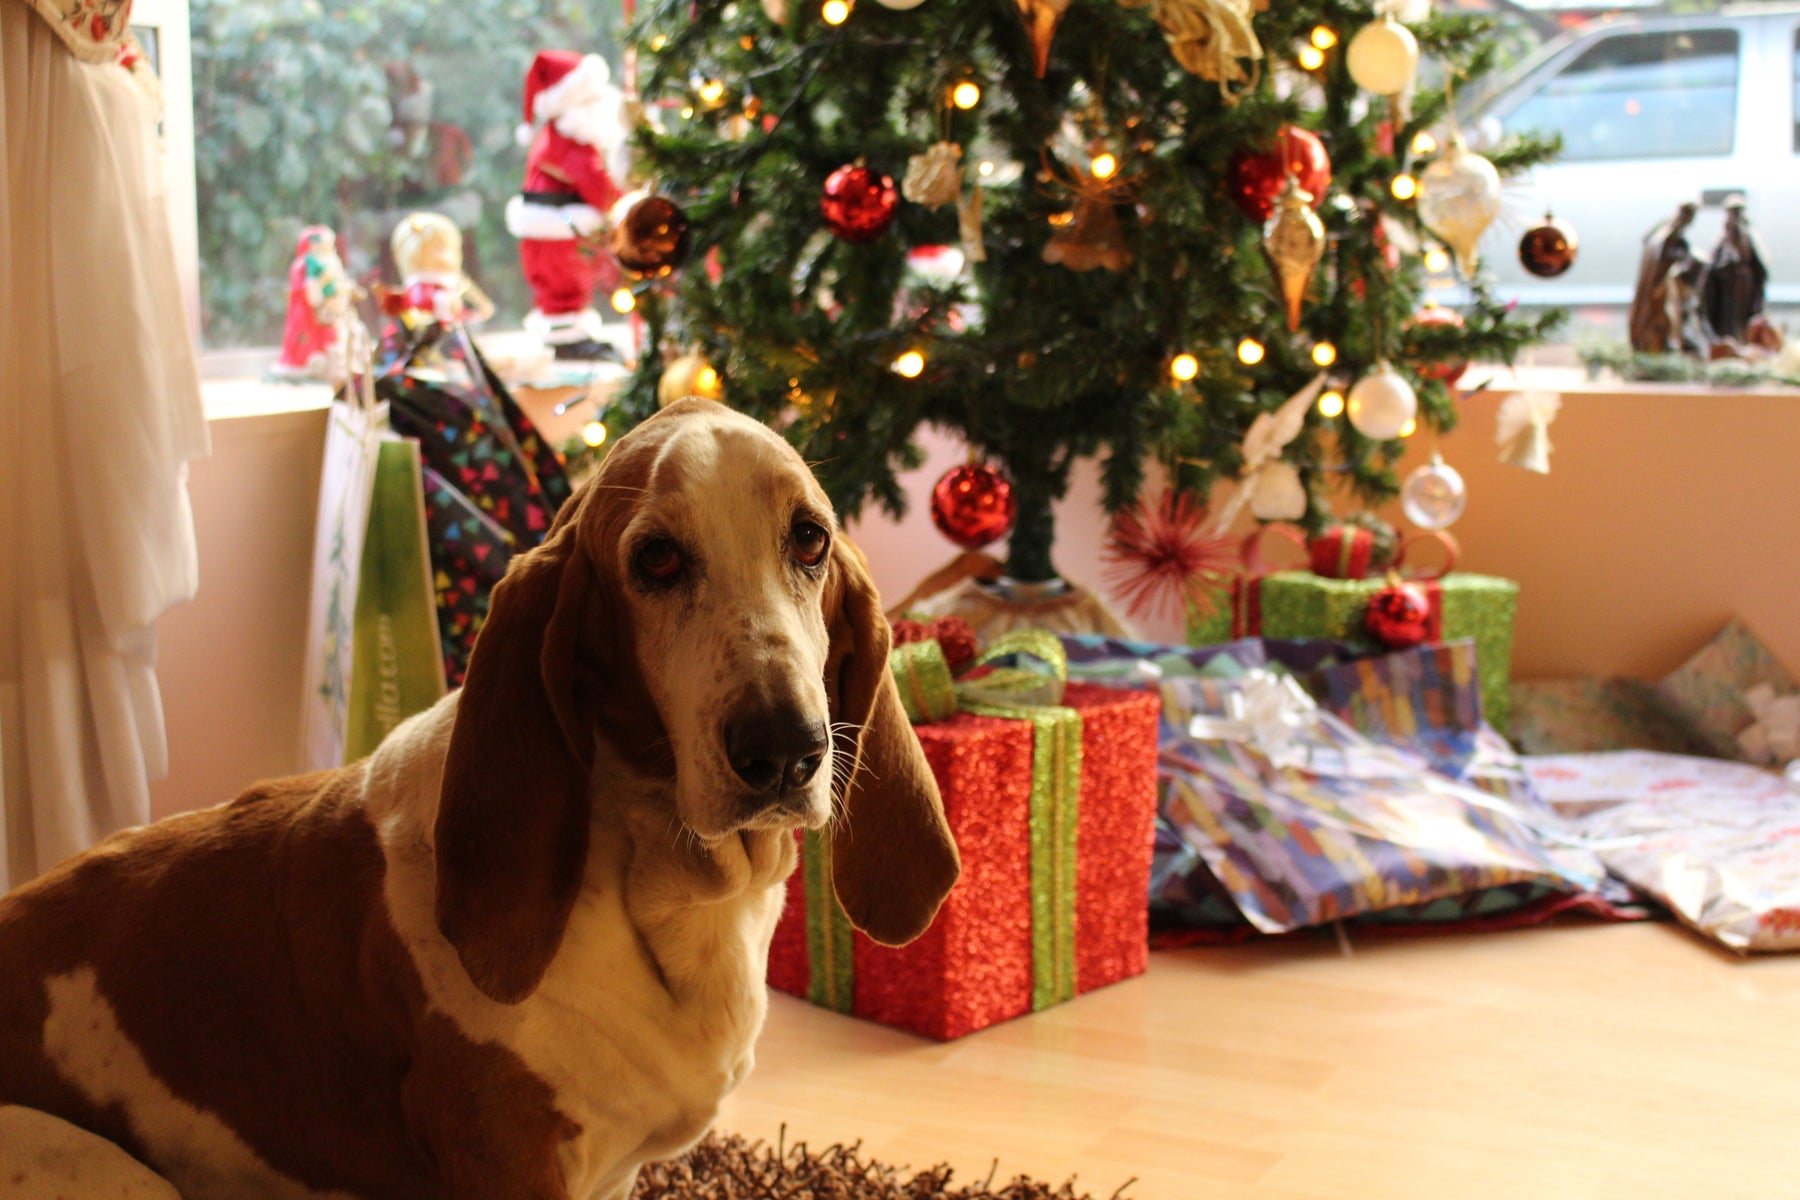 Keeping Your Furry Friends Safe During the Holidays